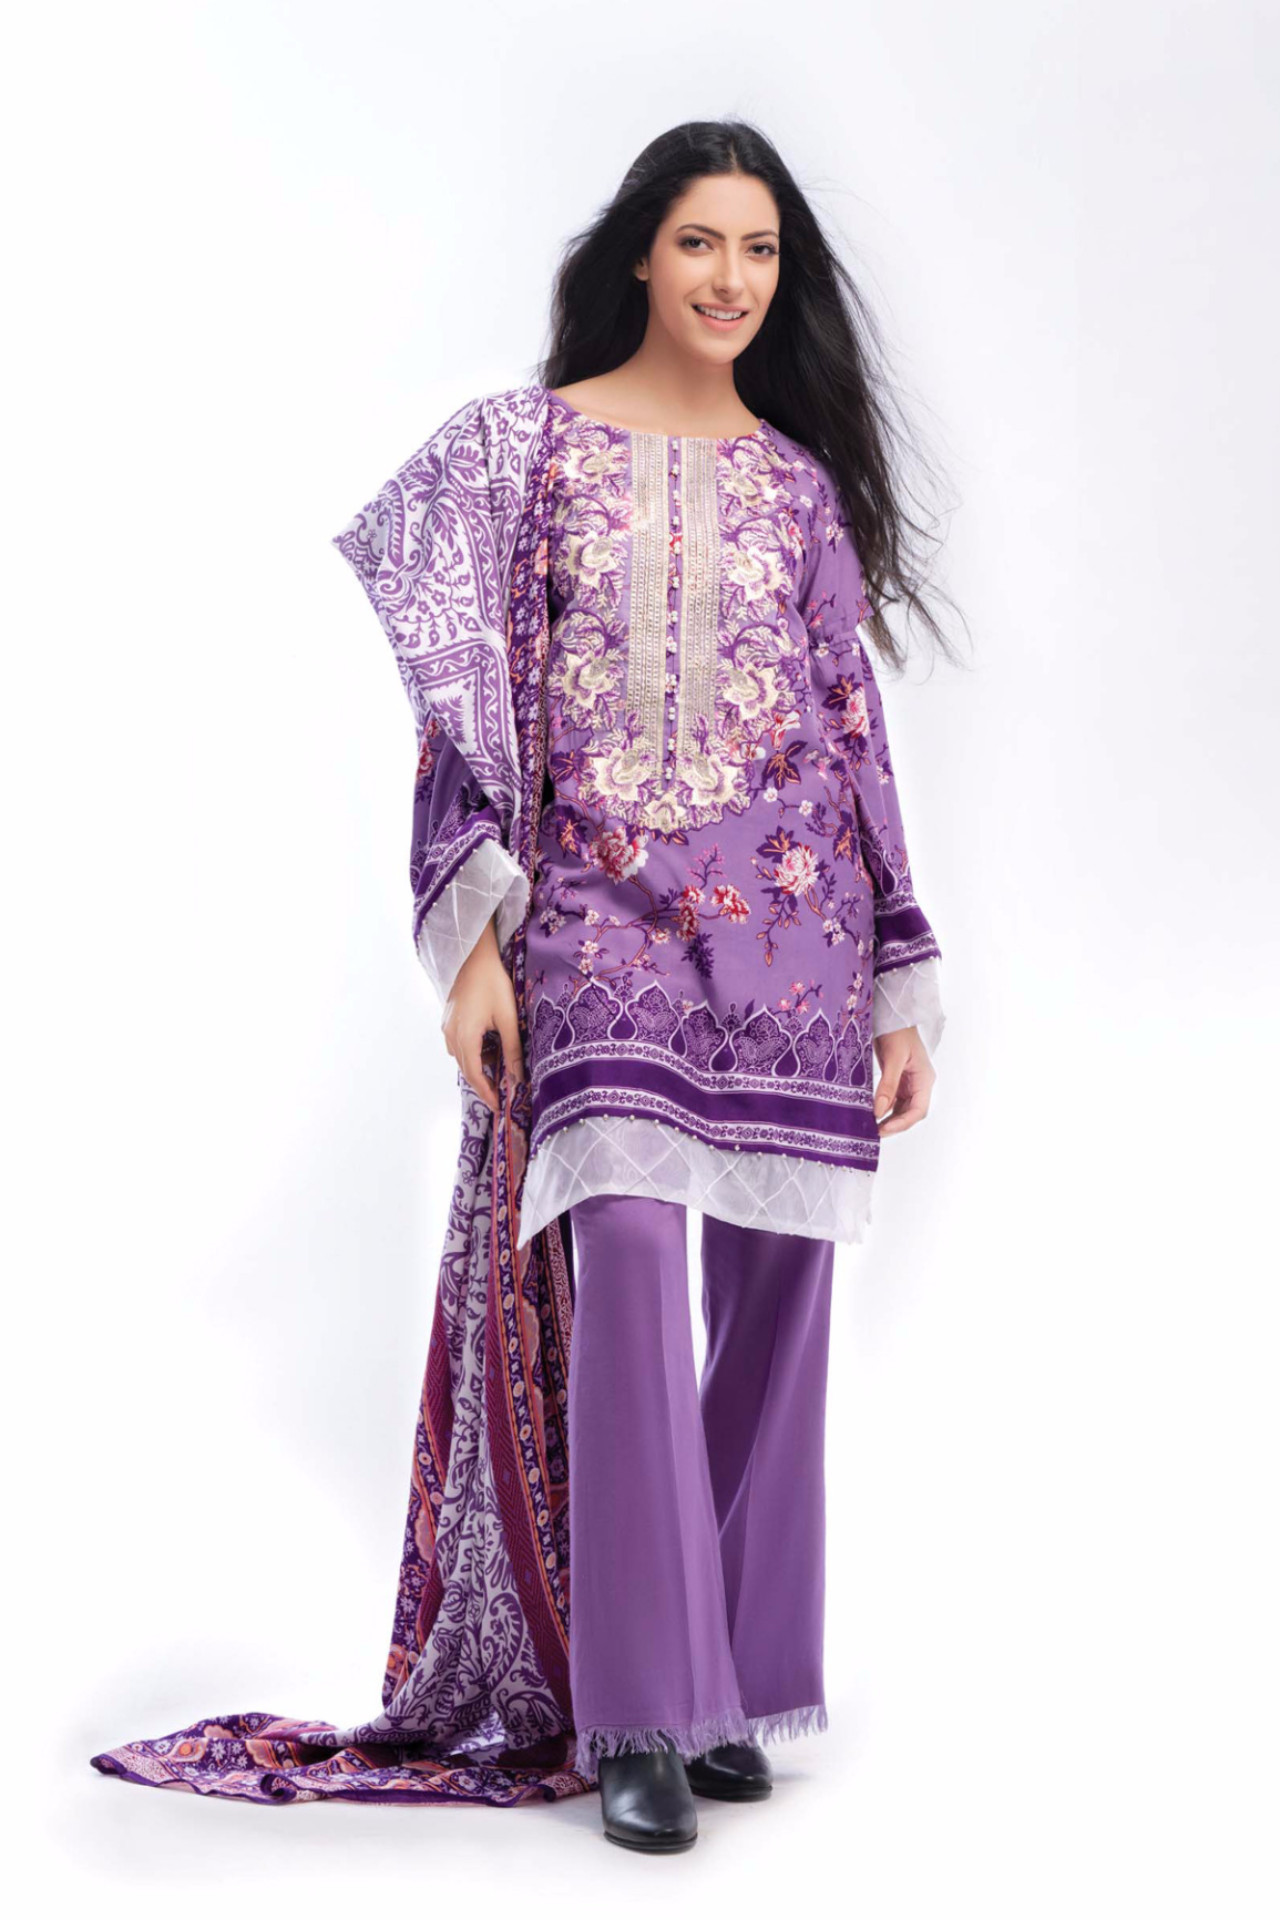 Beautiful purple dress by gul ahmed for fall